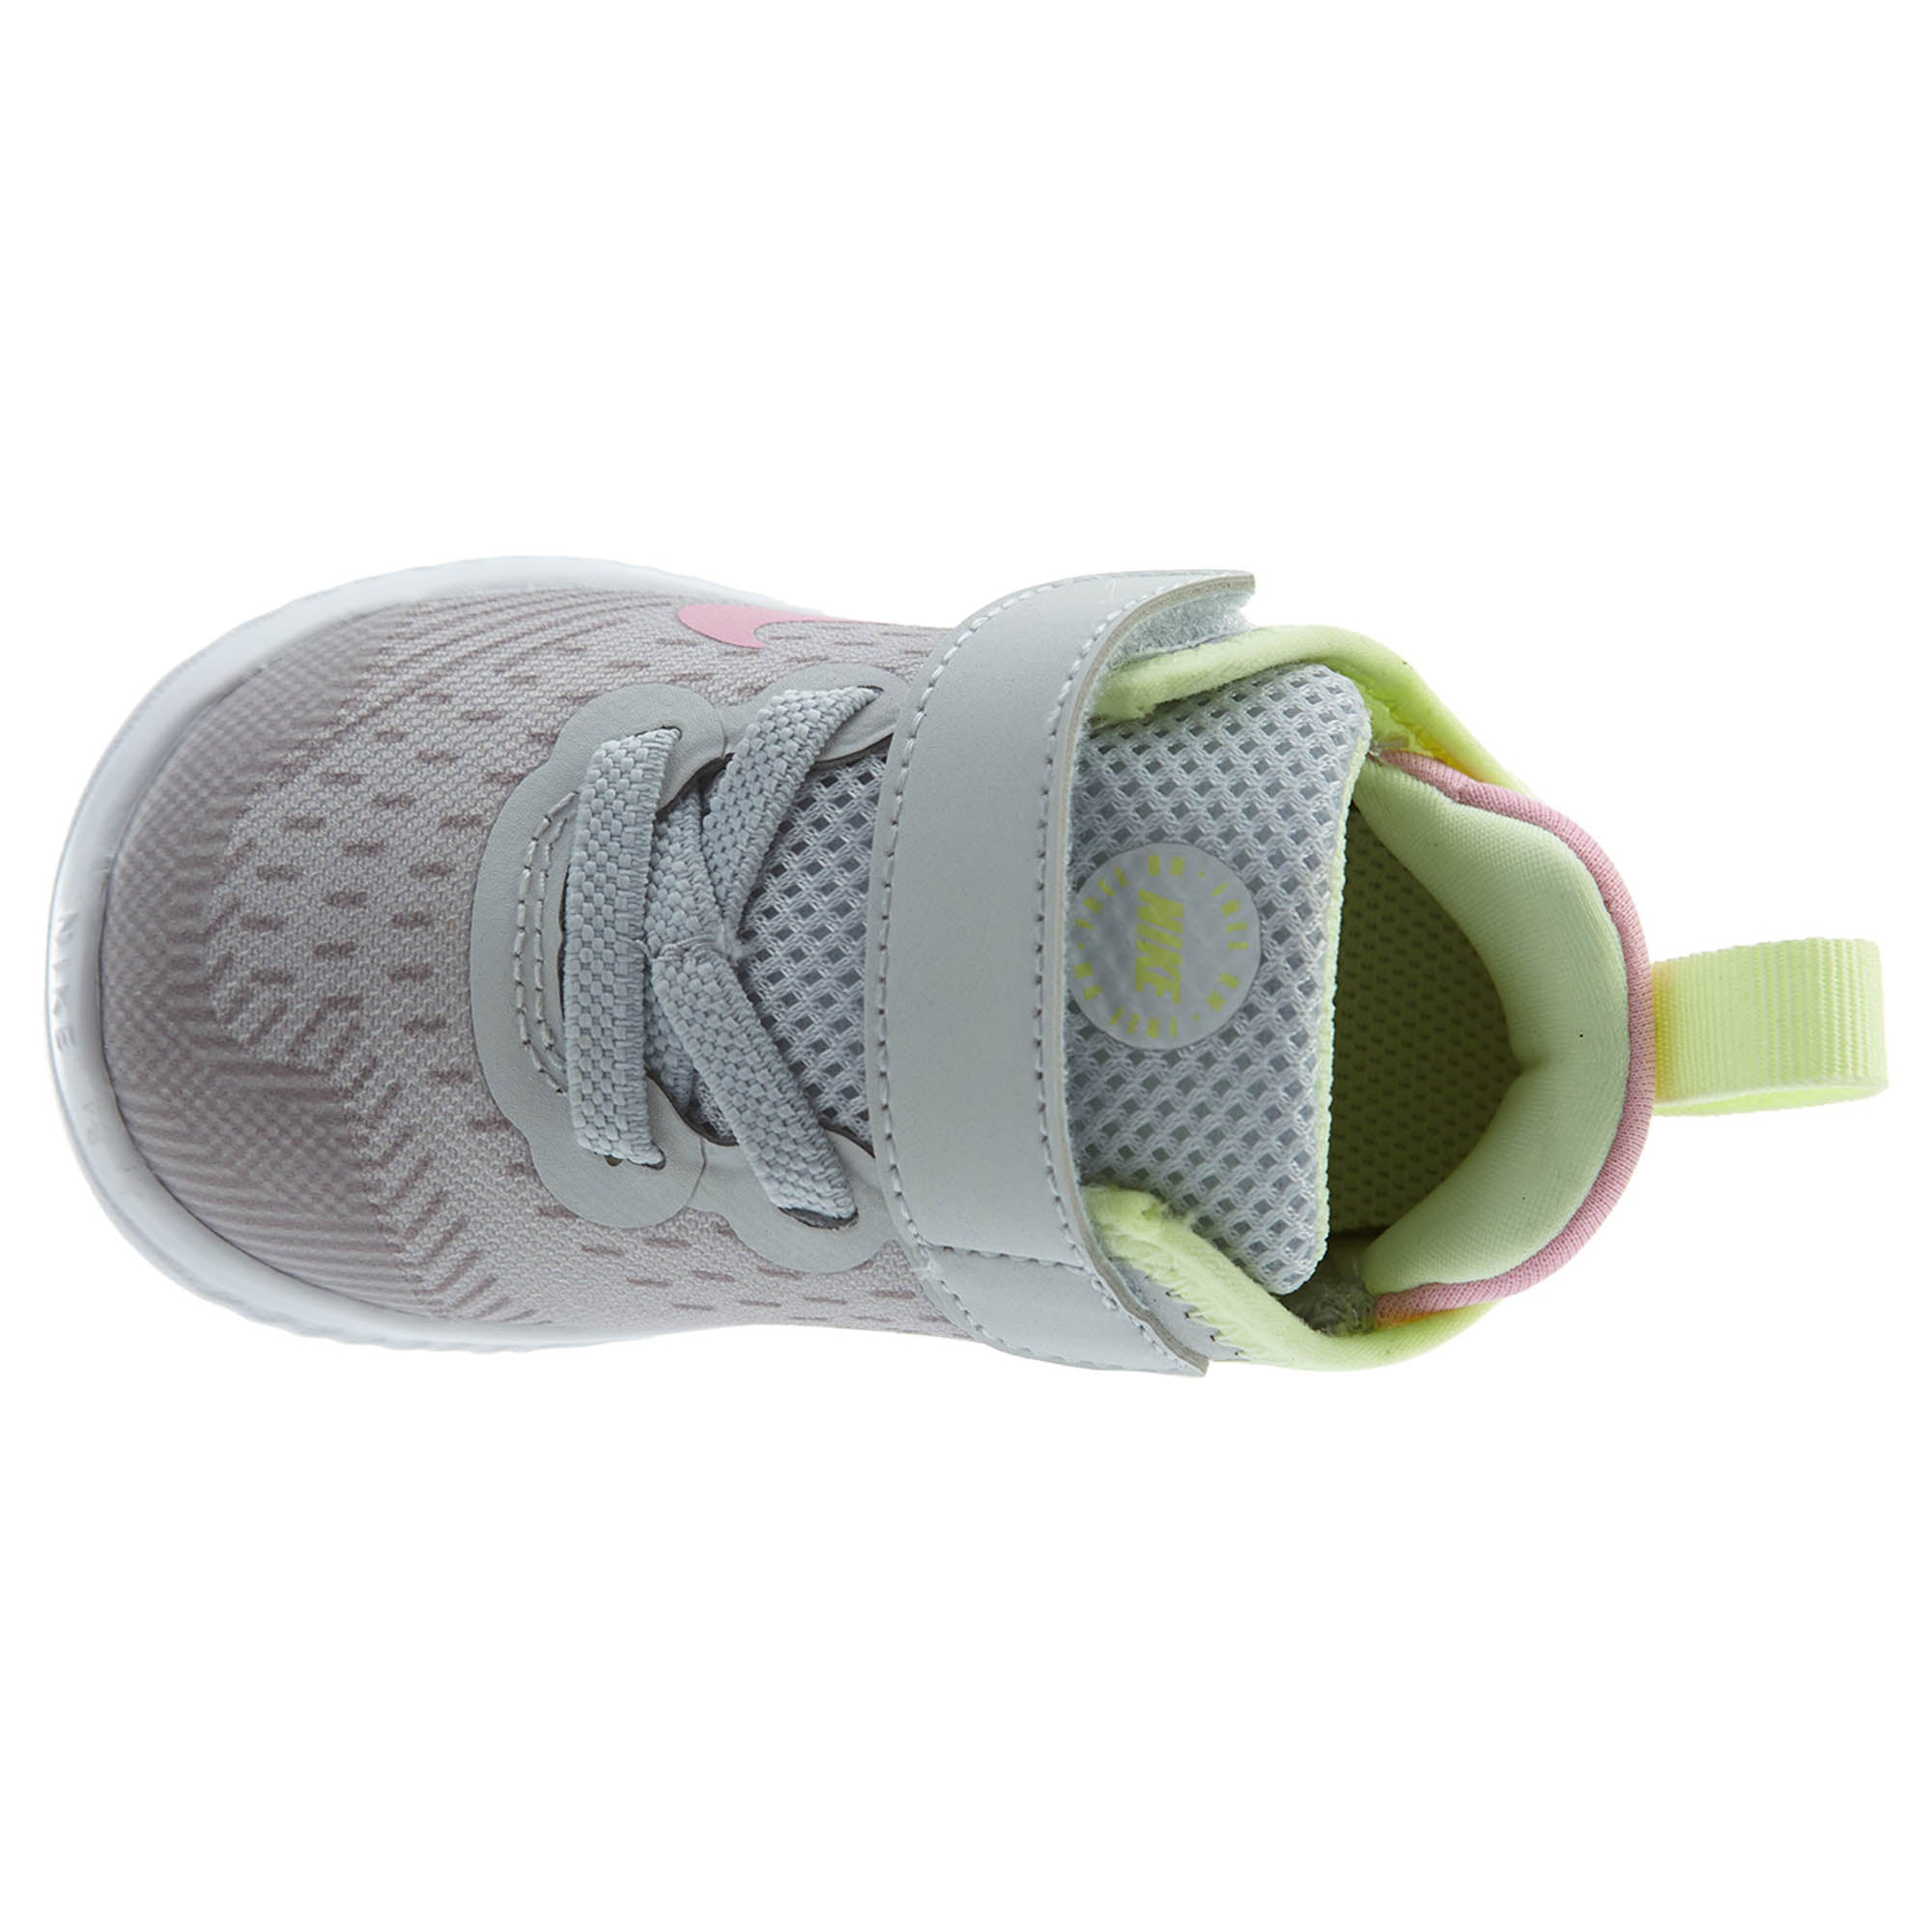 d2e85d1d10a71 Nike Free Rn 2018 Toddlers Style   Ah3456-002. NIKE   Baby   Toddler Shoes